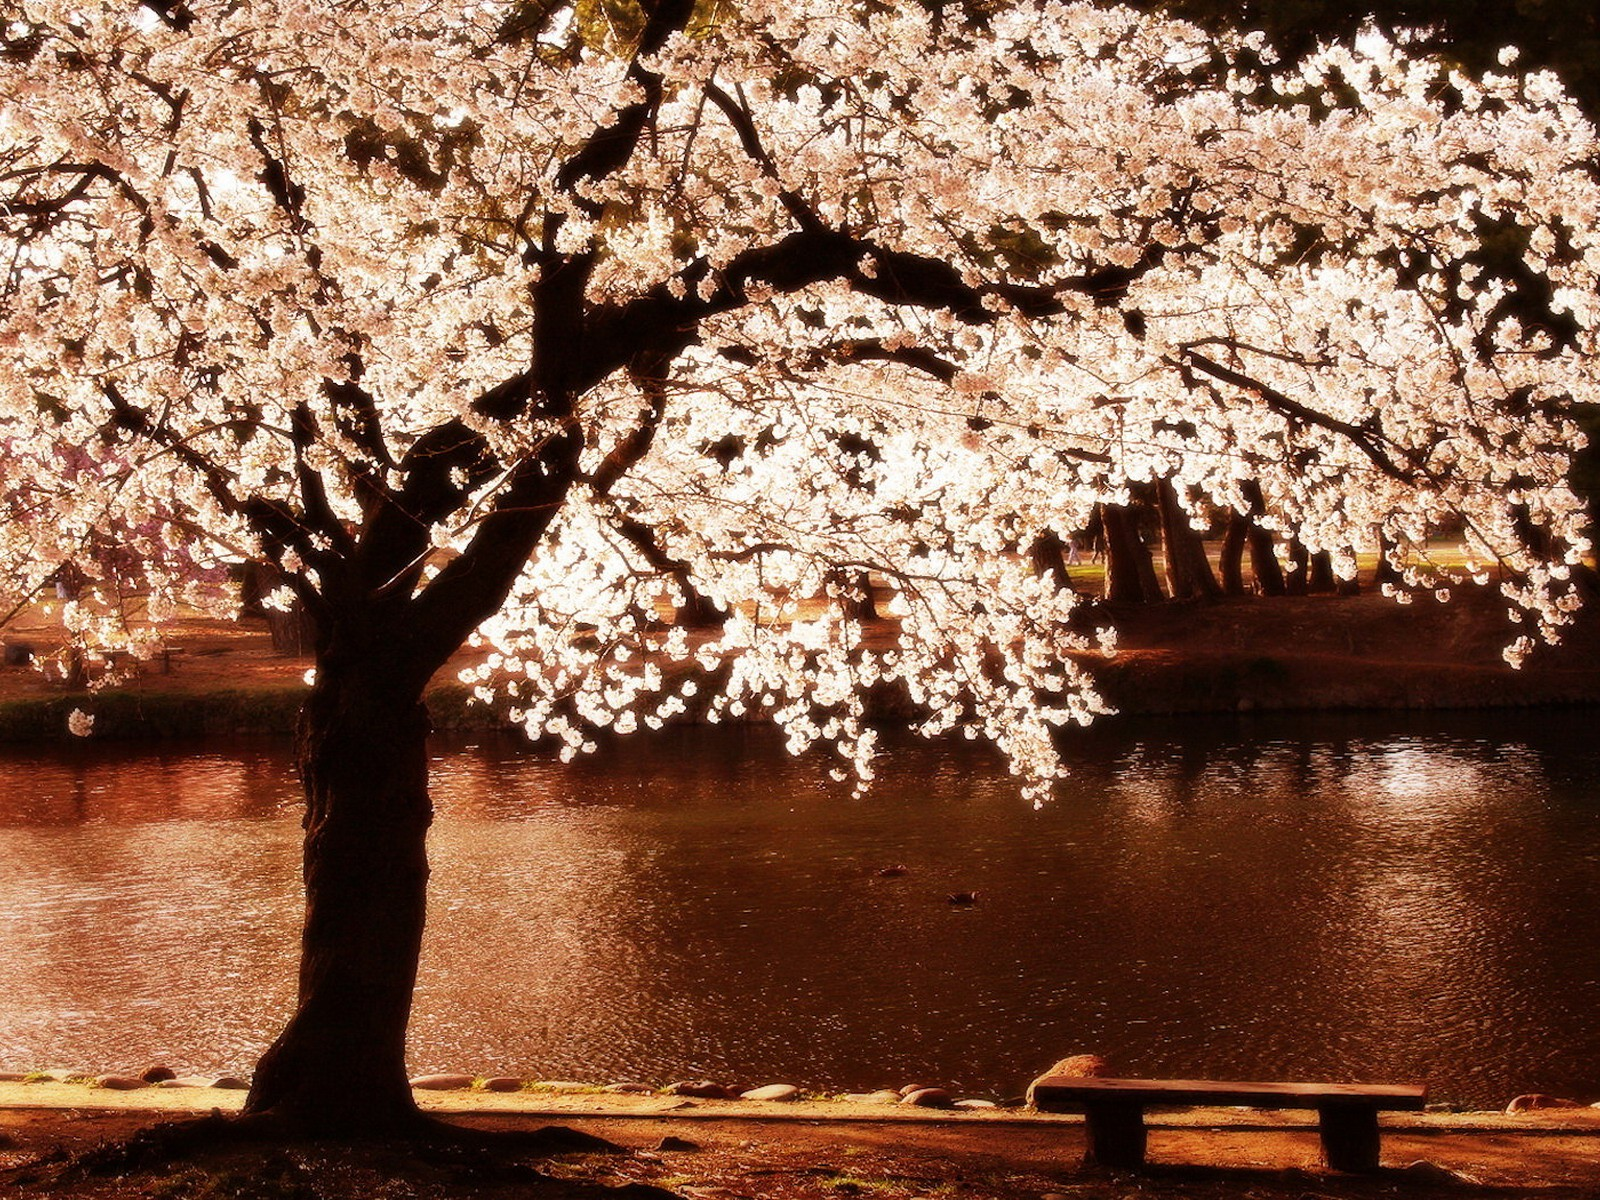 Cherry Blossom Tree at Night Cherry Blossoms Trees Night